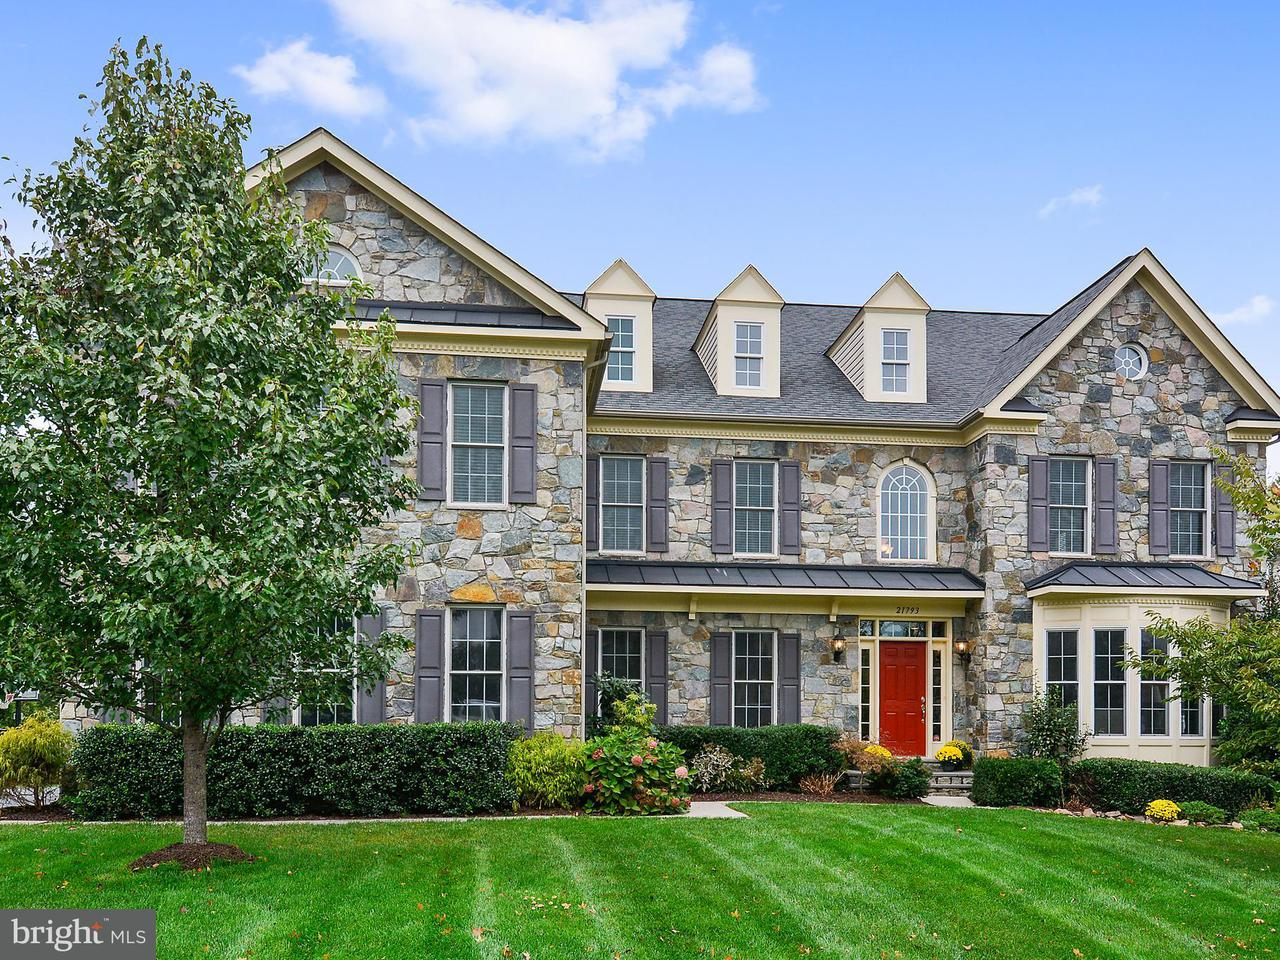 Single Family Home for Sale at 21793 IANNIS SPRING Drive 21793 IANNIS SPRING Drive Ashburn, Virginia 20148 United States